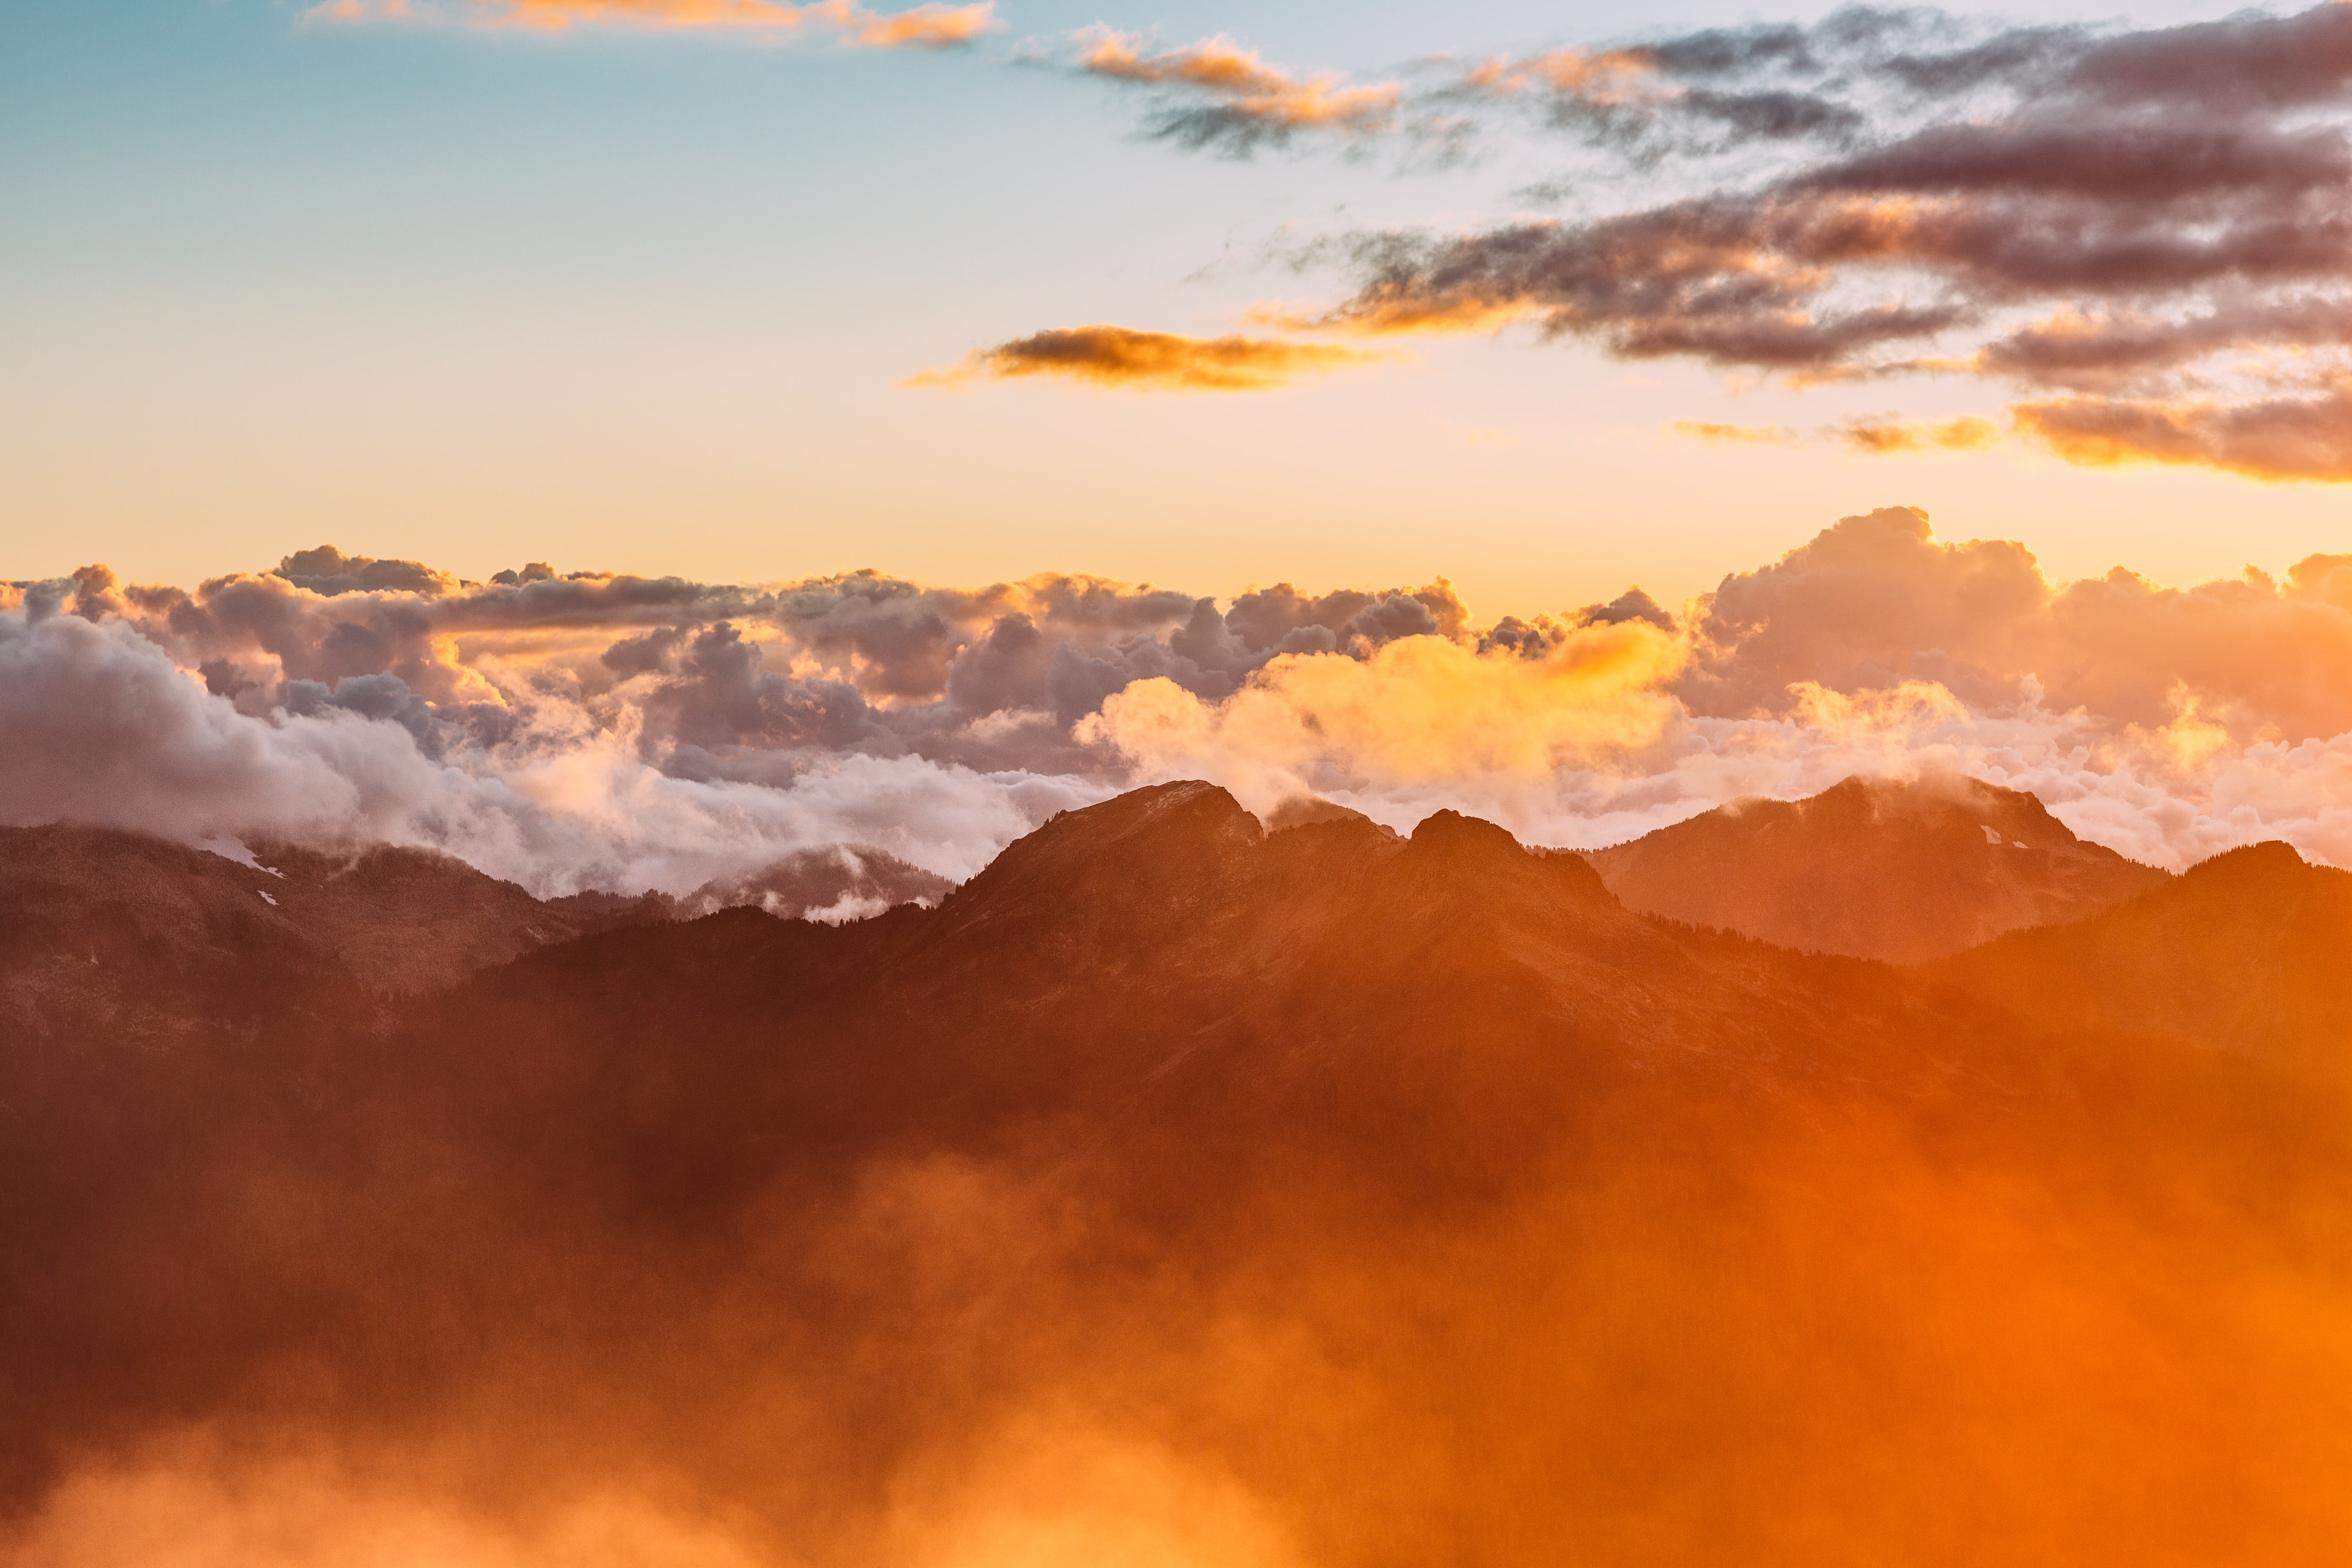 Clouds envelop a mountain range during sunset